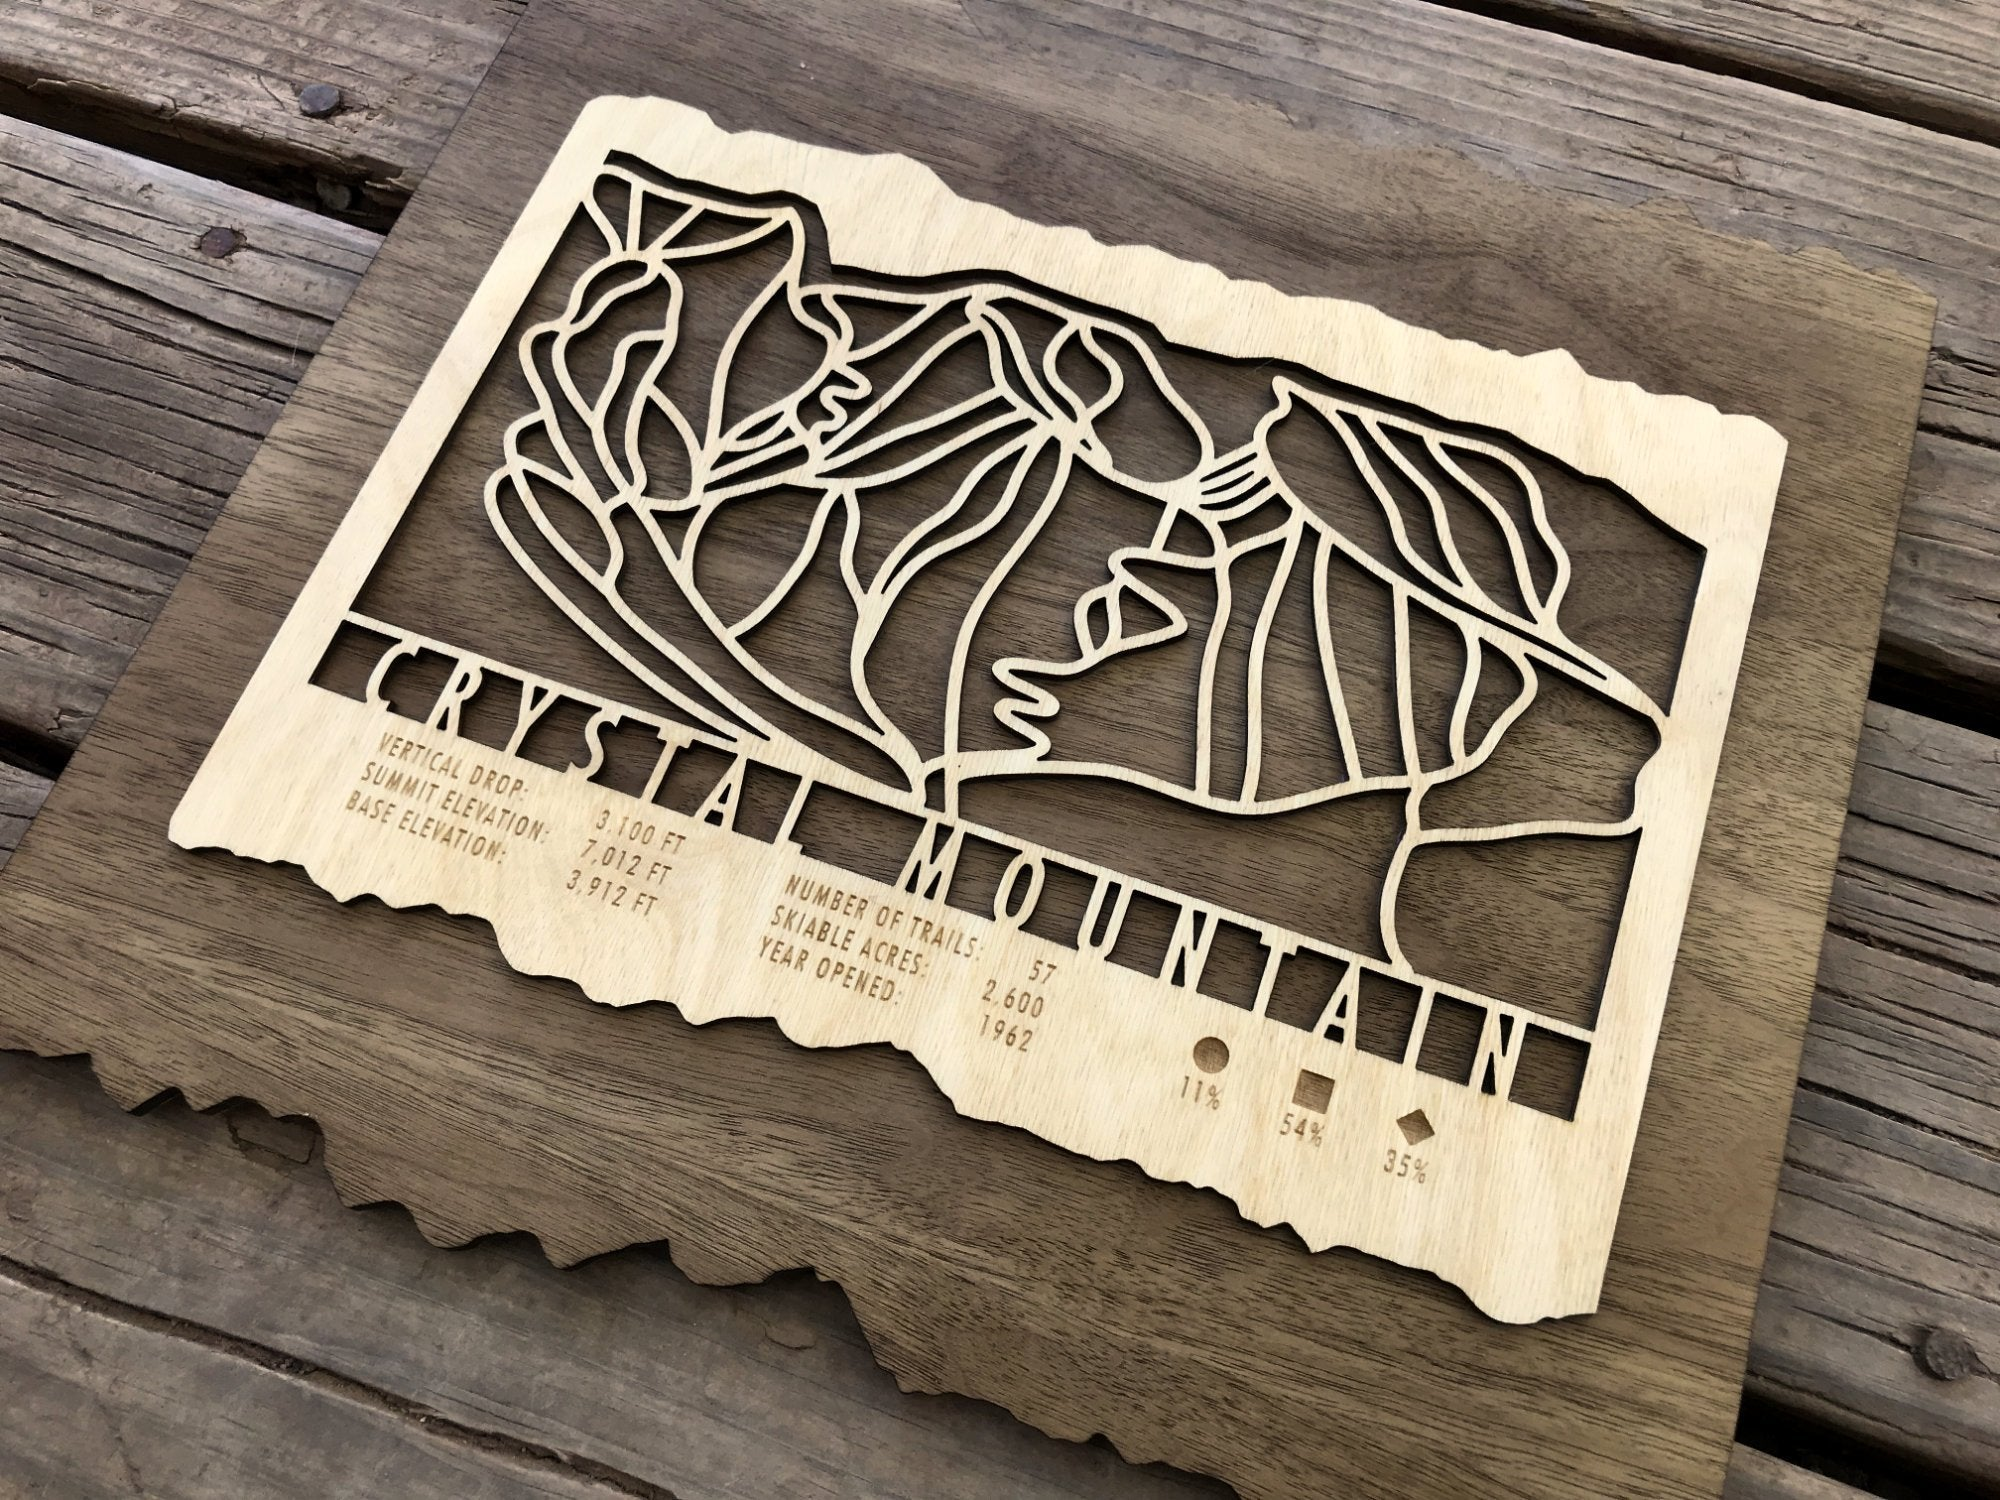 Crystal Mountain Ski Decor Trail Map Art - MountainCut